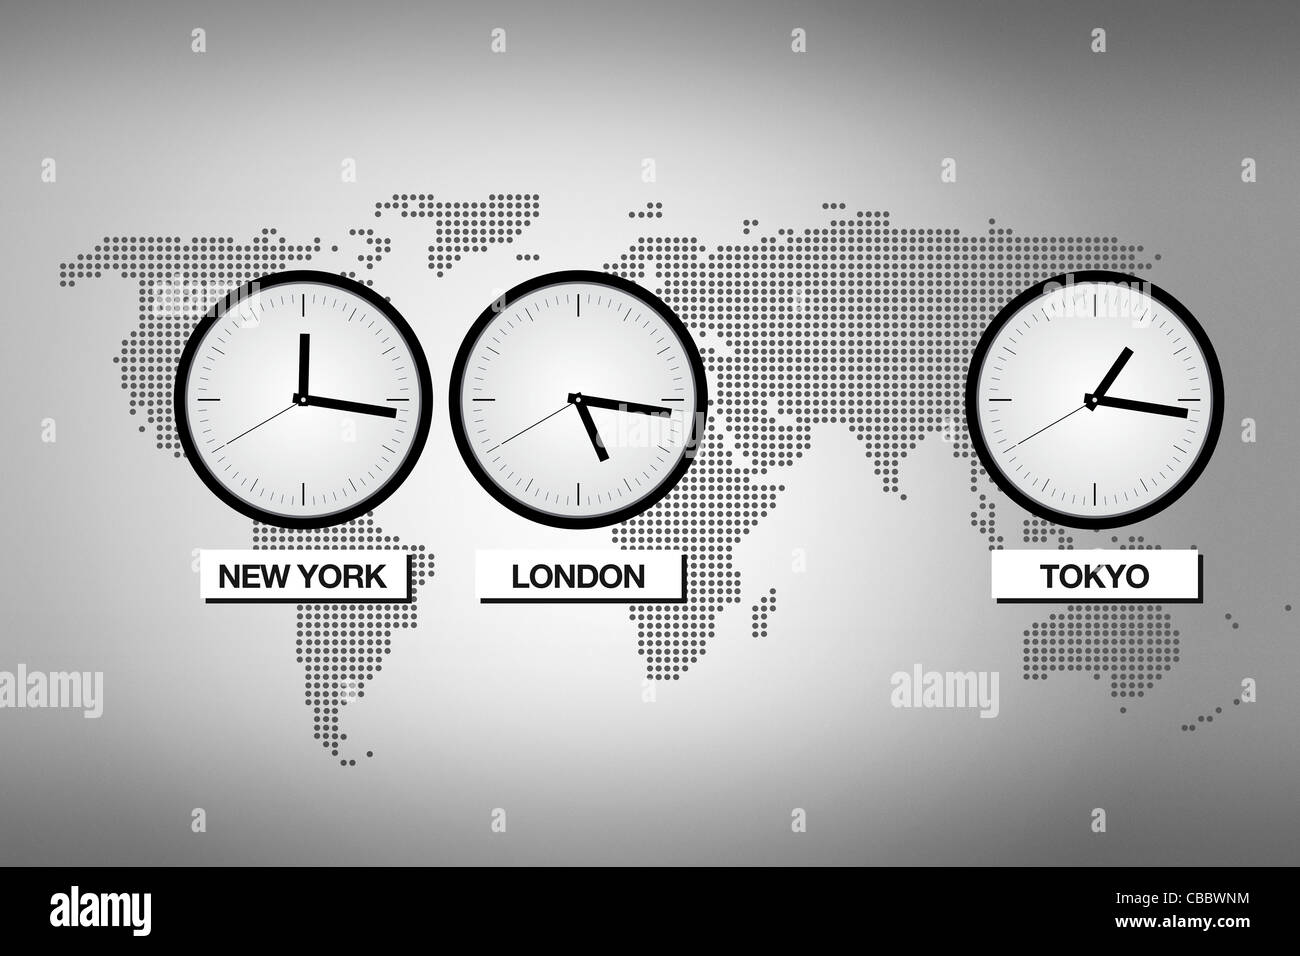 Abstract world map with clocks representing different time zones in abstract world map with clocks representing different time zones in big cities like tokyo london and new york gumiabroncs Gallery